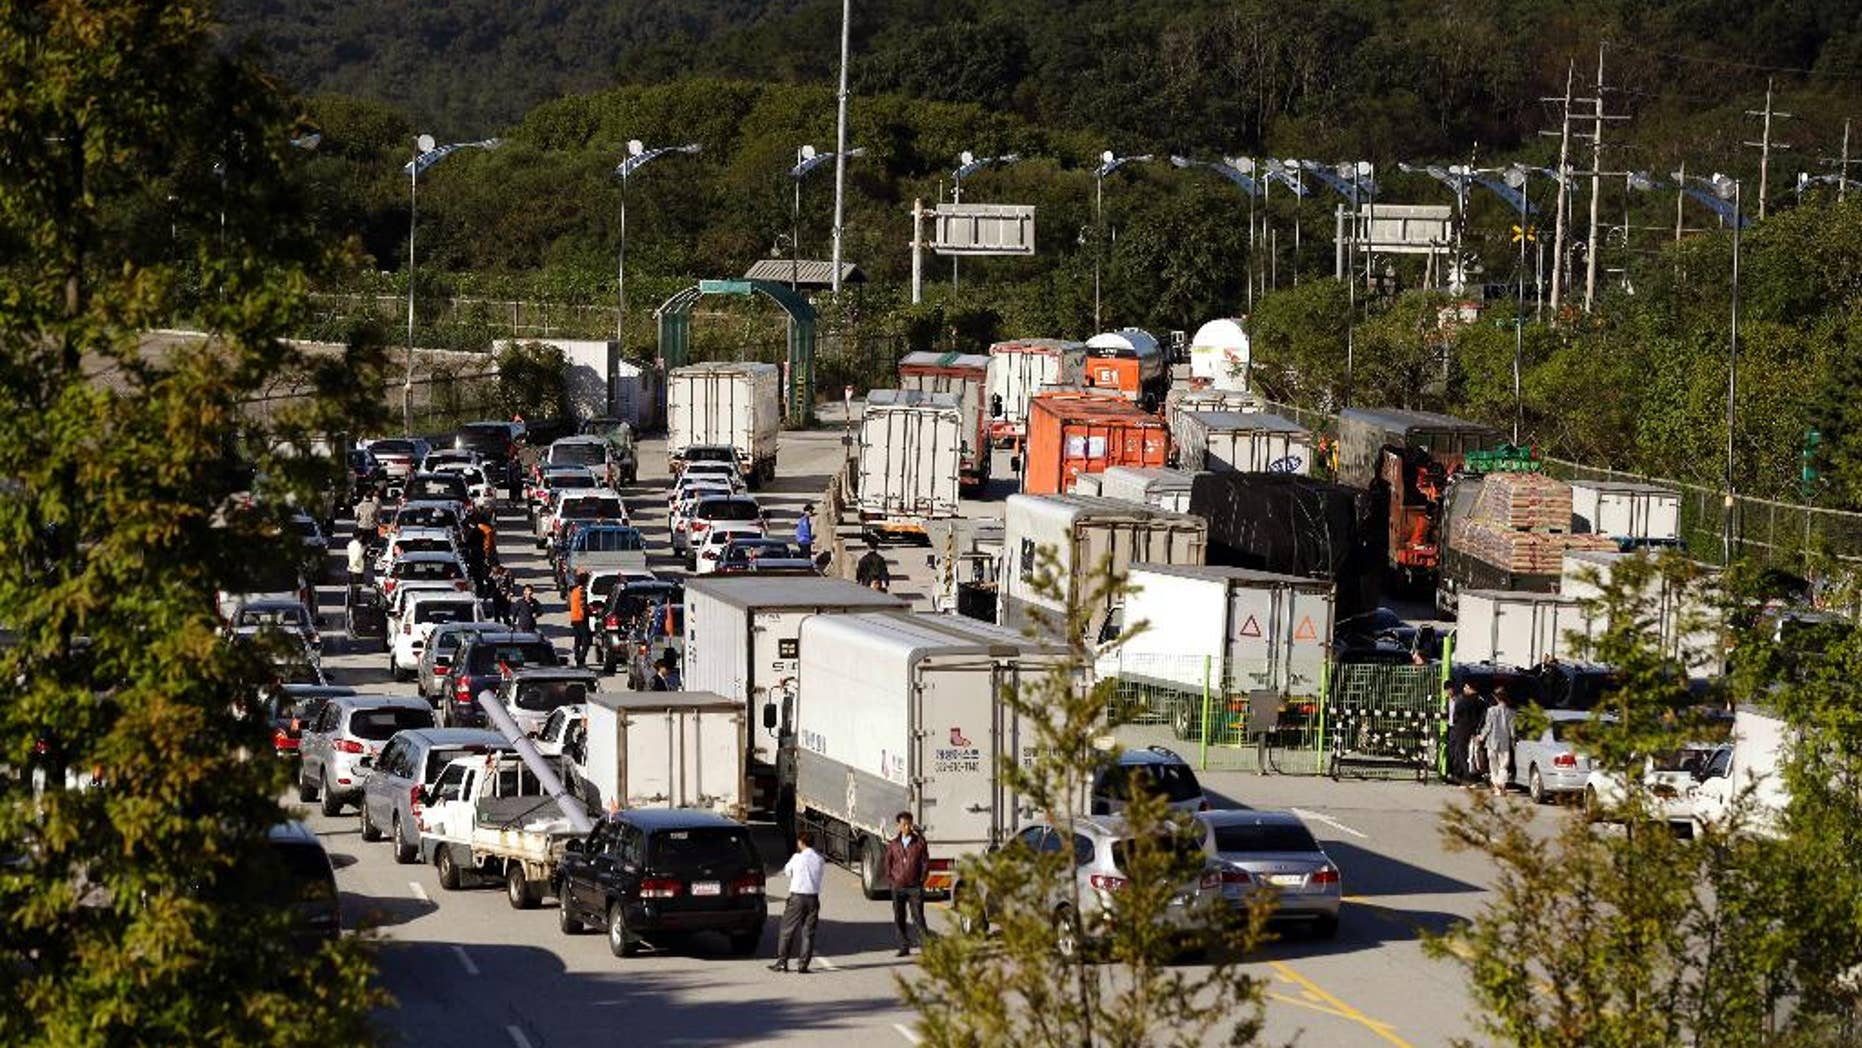 FILE - In this Sept. 16, 2013 file photo, South Korean vehicles leave for the Kaesong Industrial Complex at the customs, immigration and quarantine area of the Inter-Korean Transit Office near the border village of Panmunjom, which has separated the two Koreas since the Korean War, in Paju, north of Seoul, South Korea. North Korea on Friday, Nov. 6, 2015 lifted entry bans it had imposed earlier this week on two South Korean officials involved in managing the jointly-run factory park in the North. (AP Photo/Lee Jin-man, File)